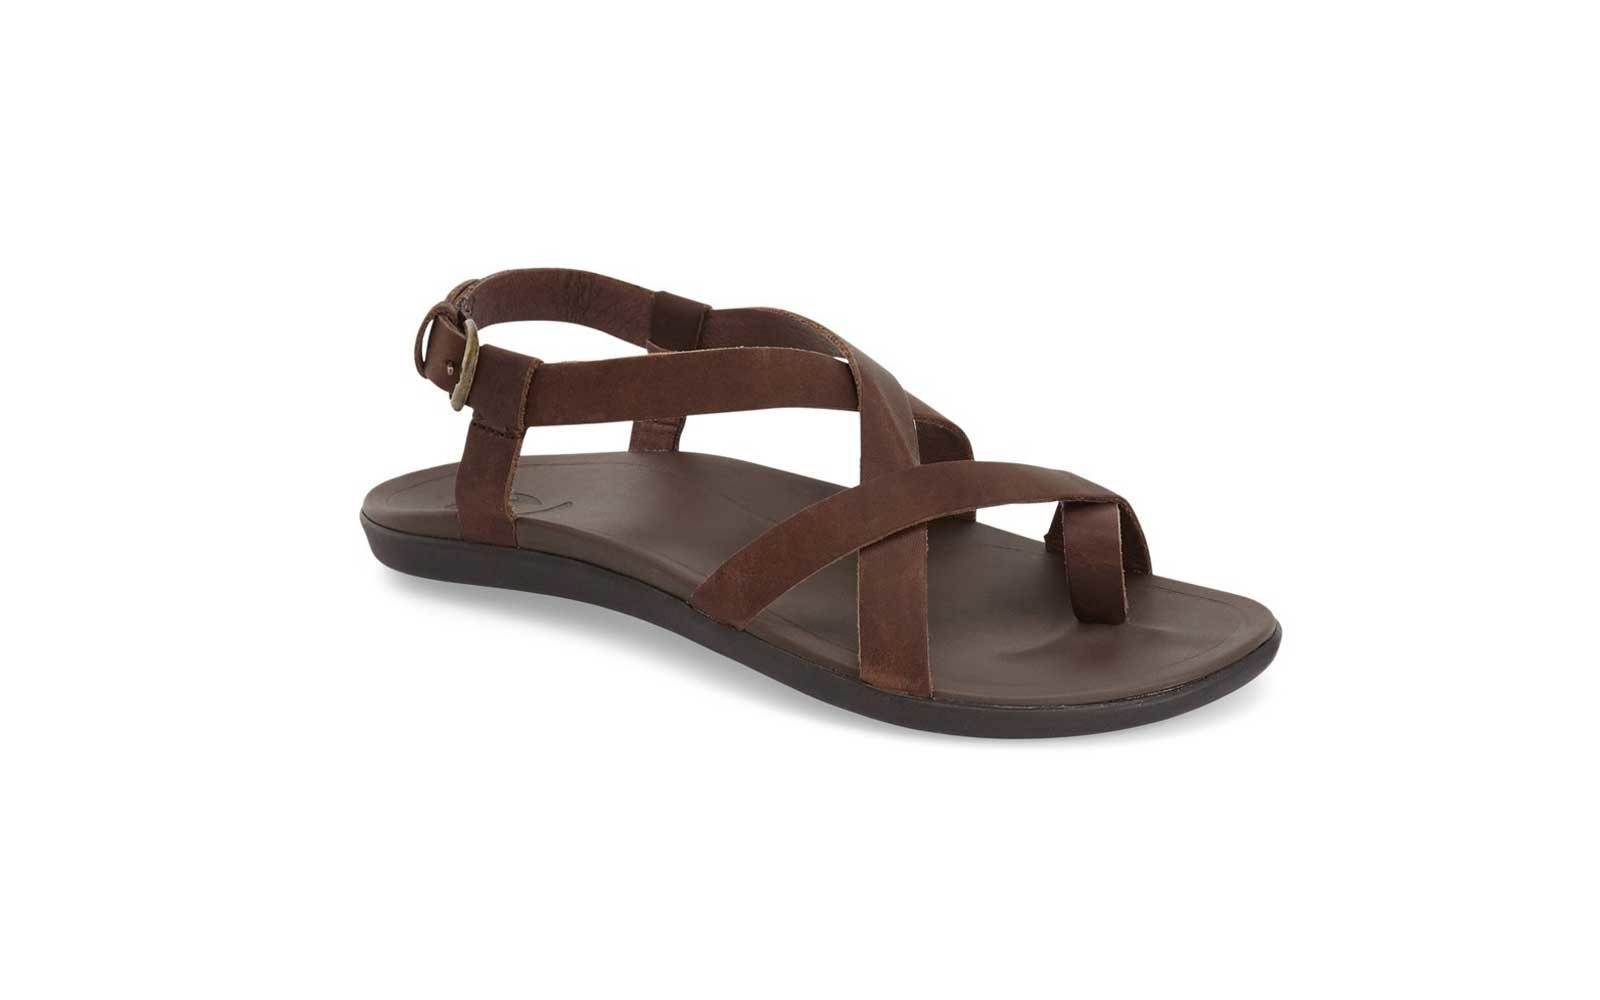 efc54a5daa51 Lightweight Leather  Olukai  Upena  Flat Sandal. womens olukai sandals